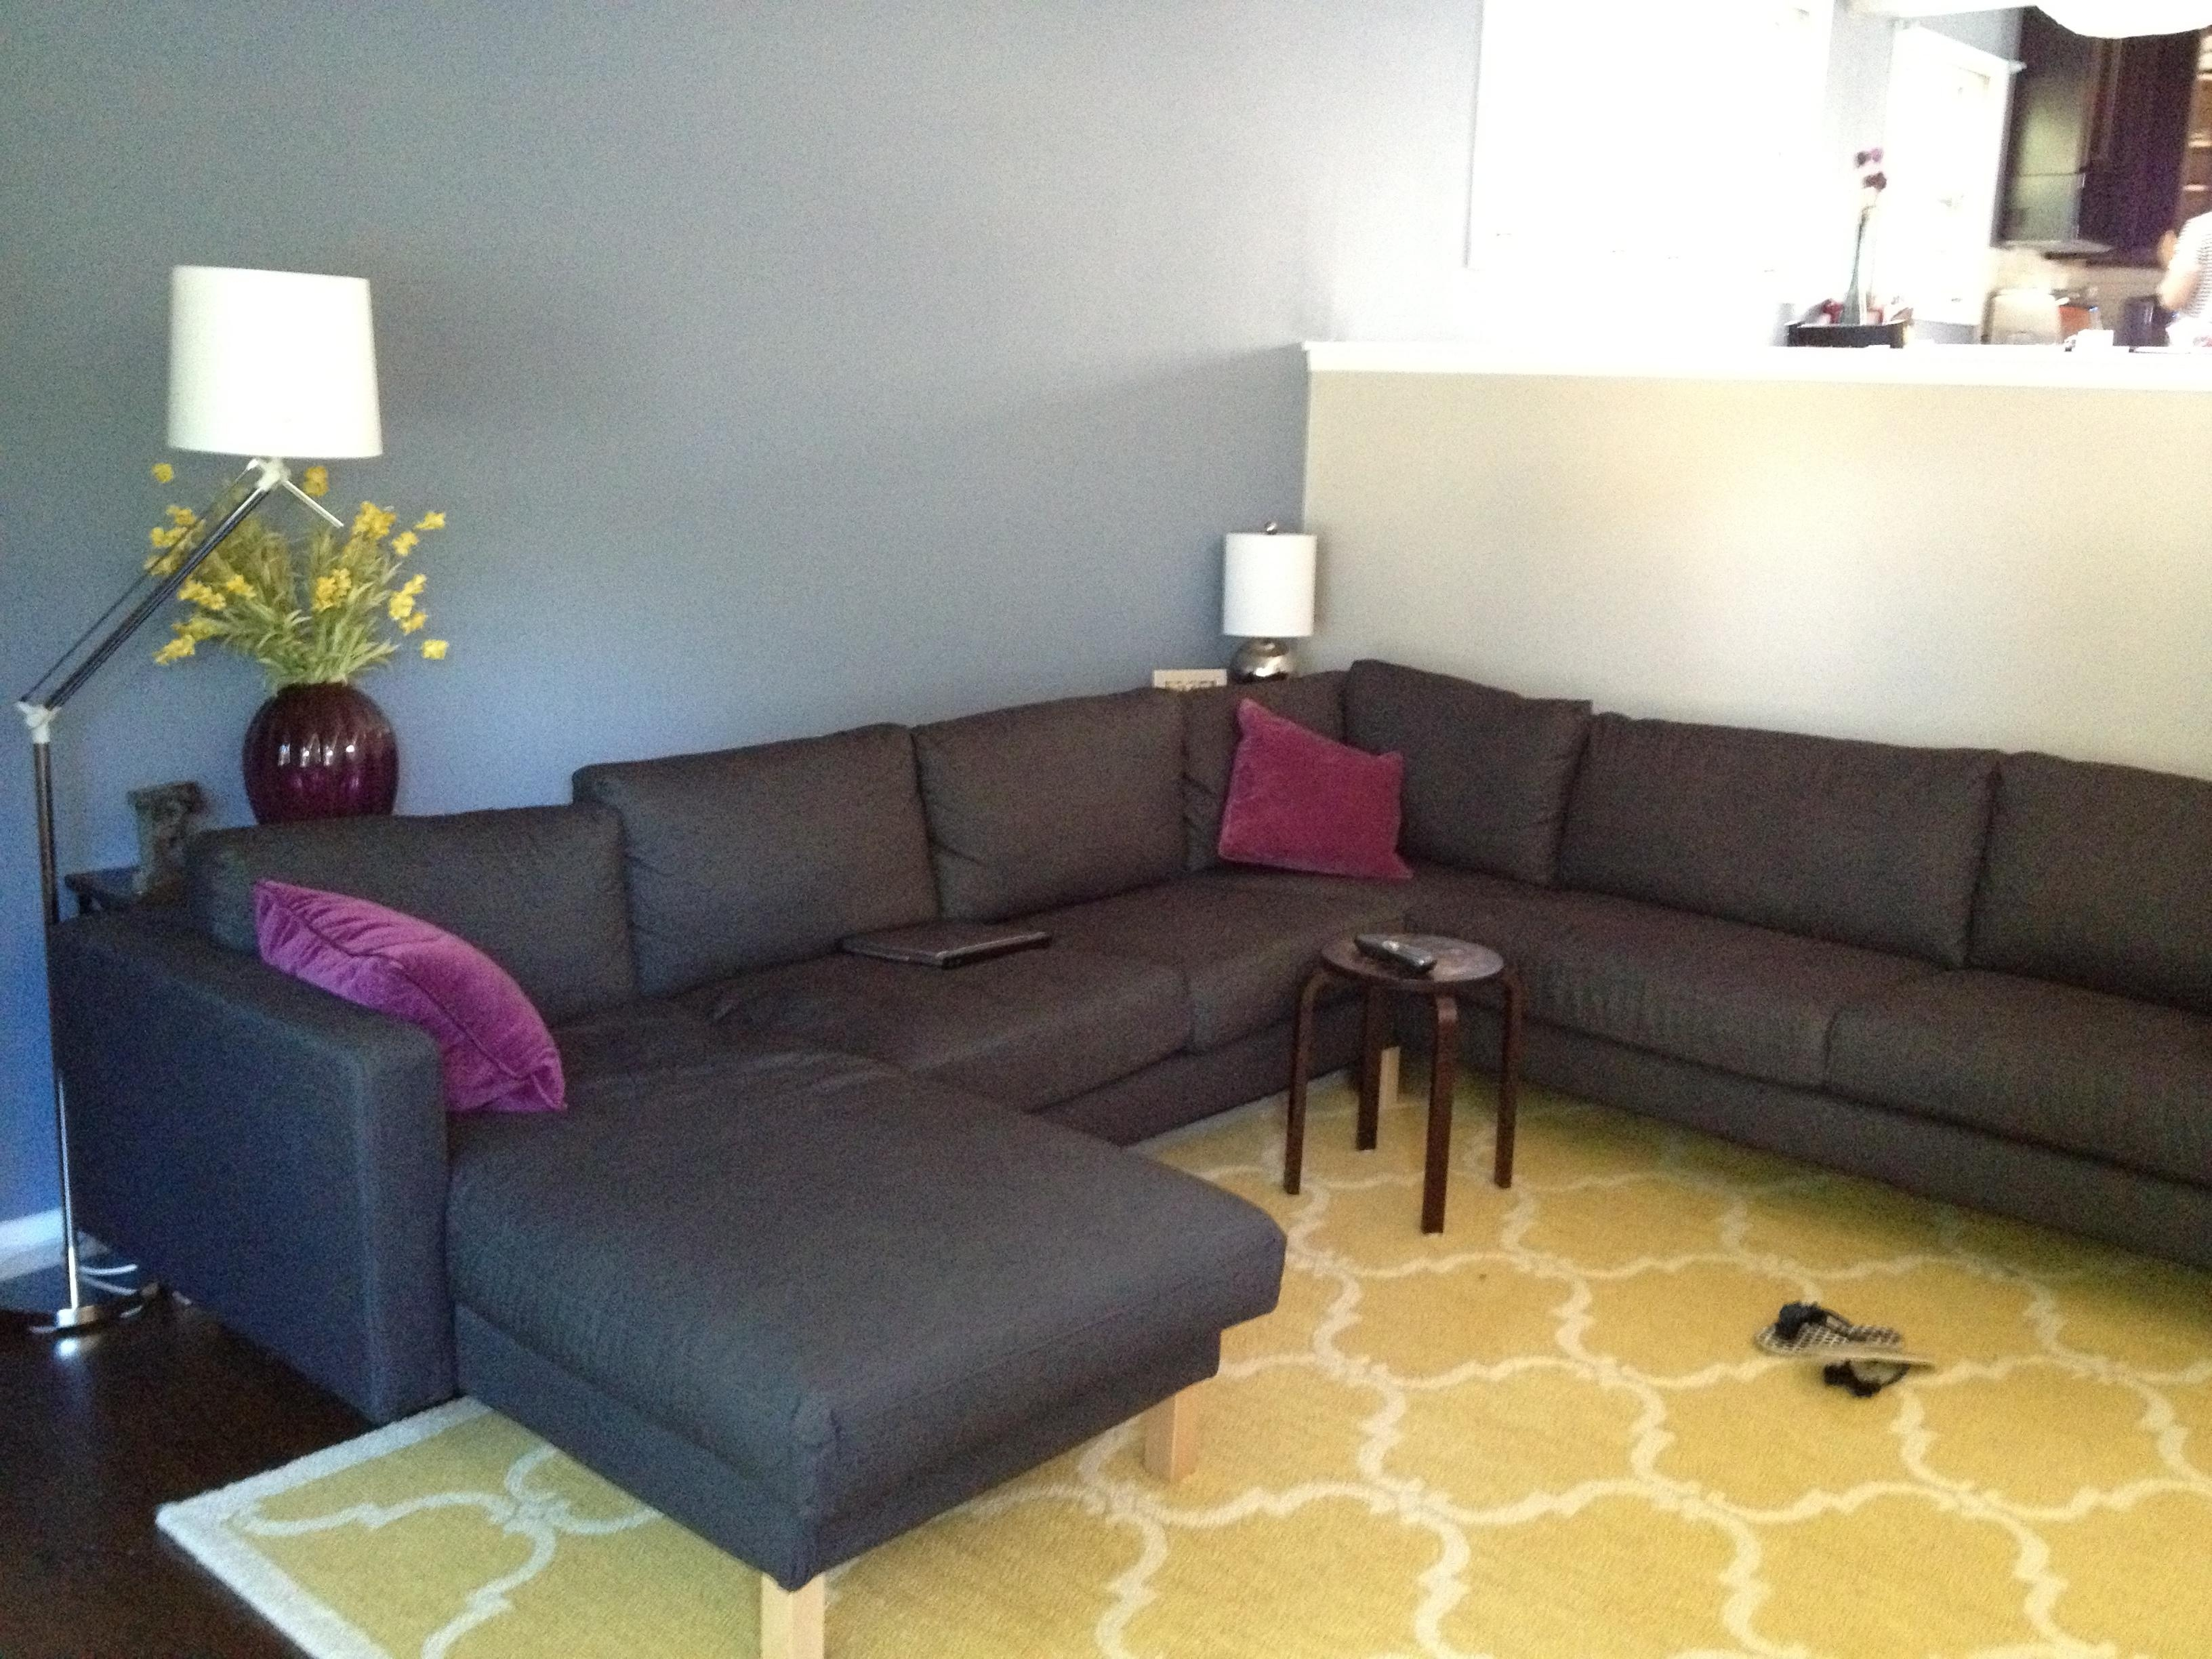 8 Sectional Floor Lamp, 51781 Living Room Sectional Sofa And Floor pertaining to Floor Lamp For Sectional Couch